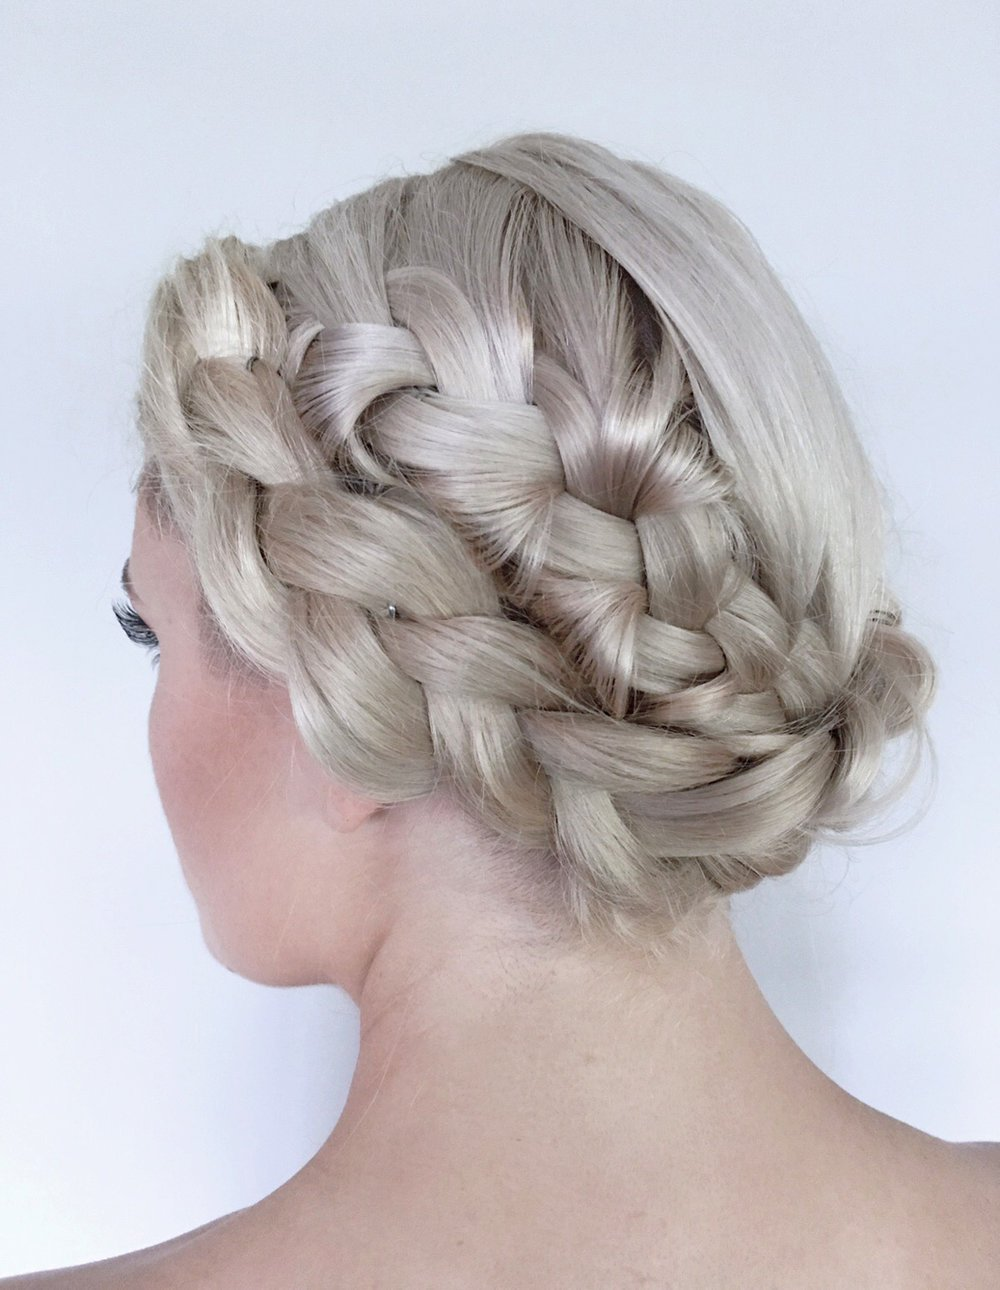 Updo style by Lari Manz, stylist and hair expert in Hudson, NY